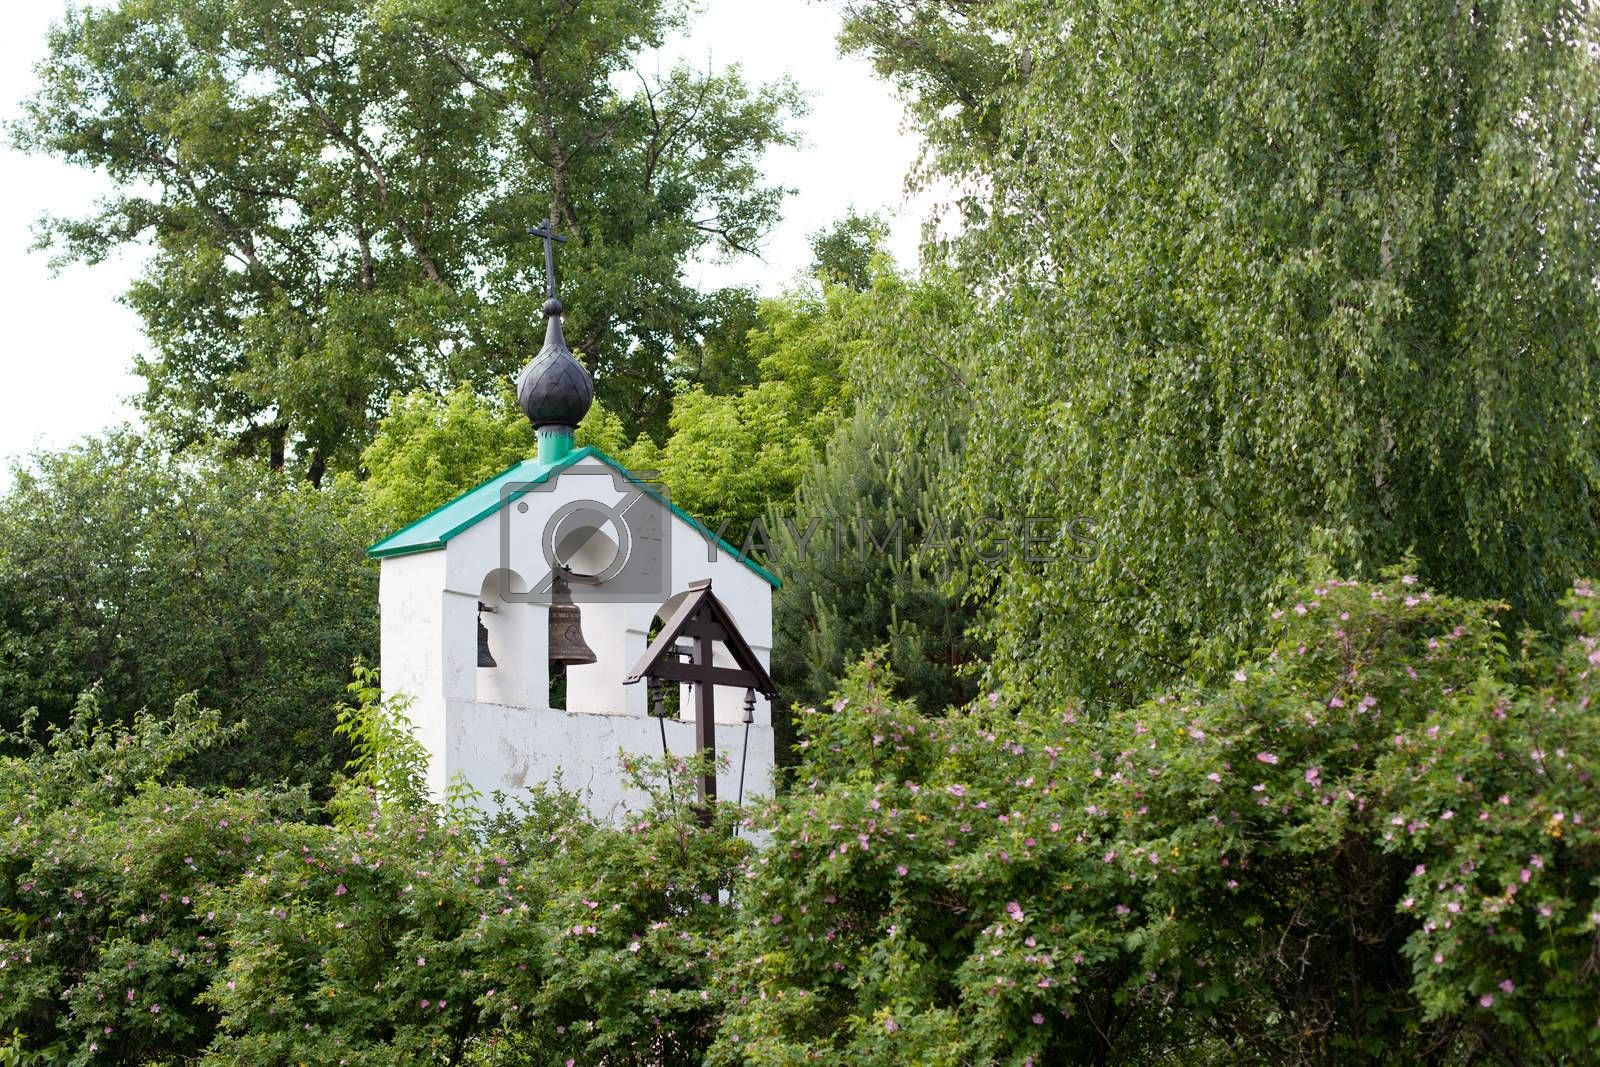 Small white orthodox bell tower